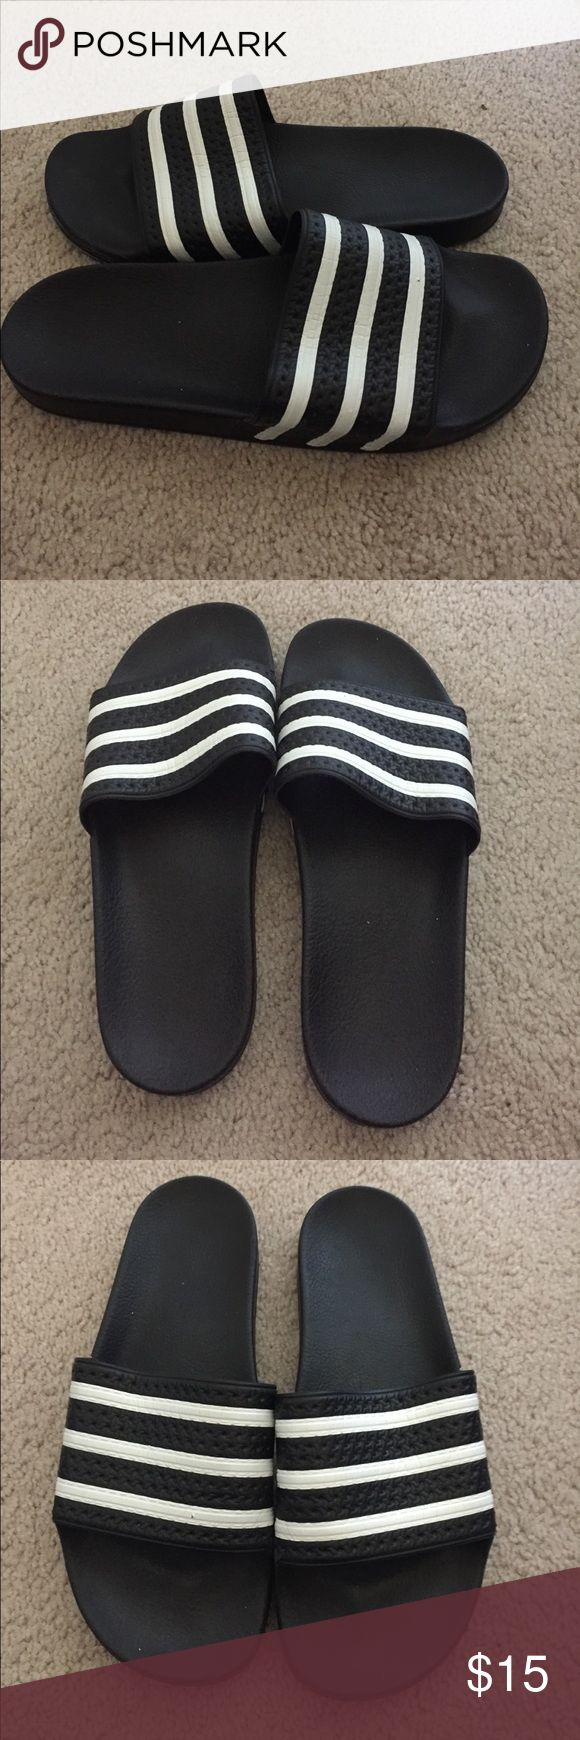 Adidas Flip Flops Black and white, size 11. Worn but pretty good condition. The top doesn't have the same form as it used to but it does not appear that way when on the foot. adidas Shoes Sandals & Flip-Flops